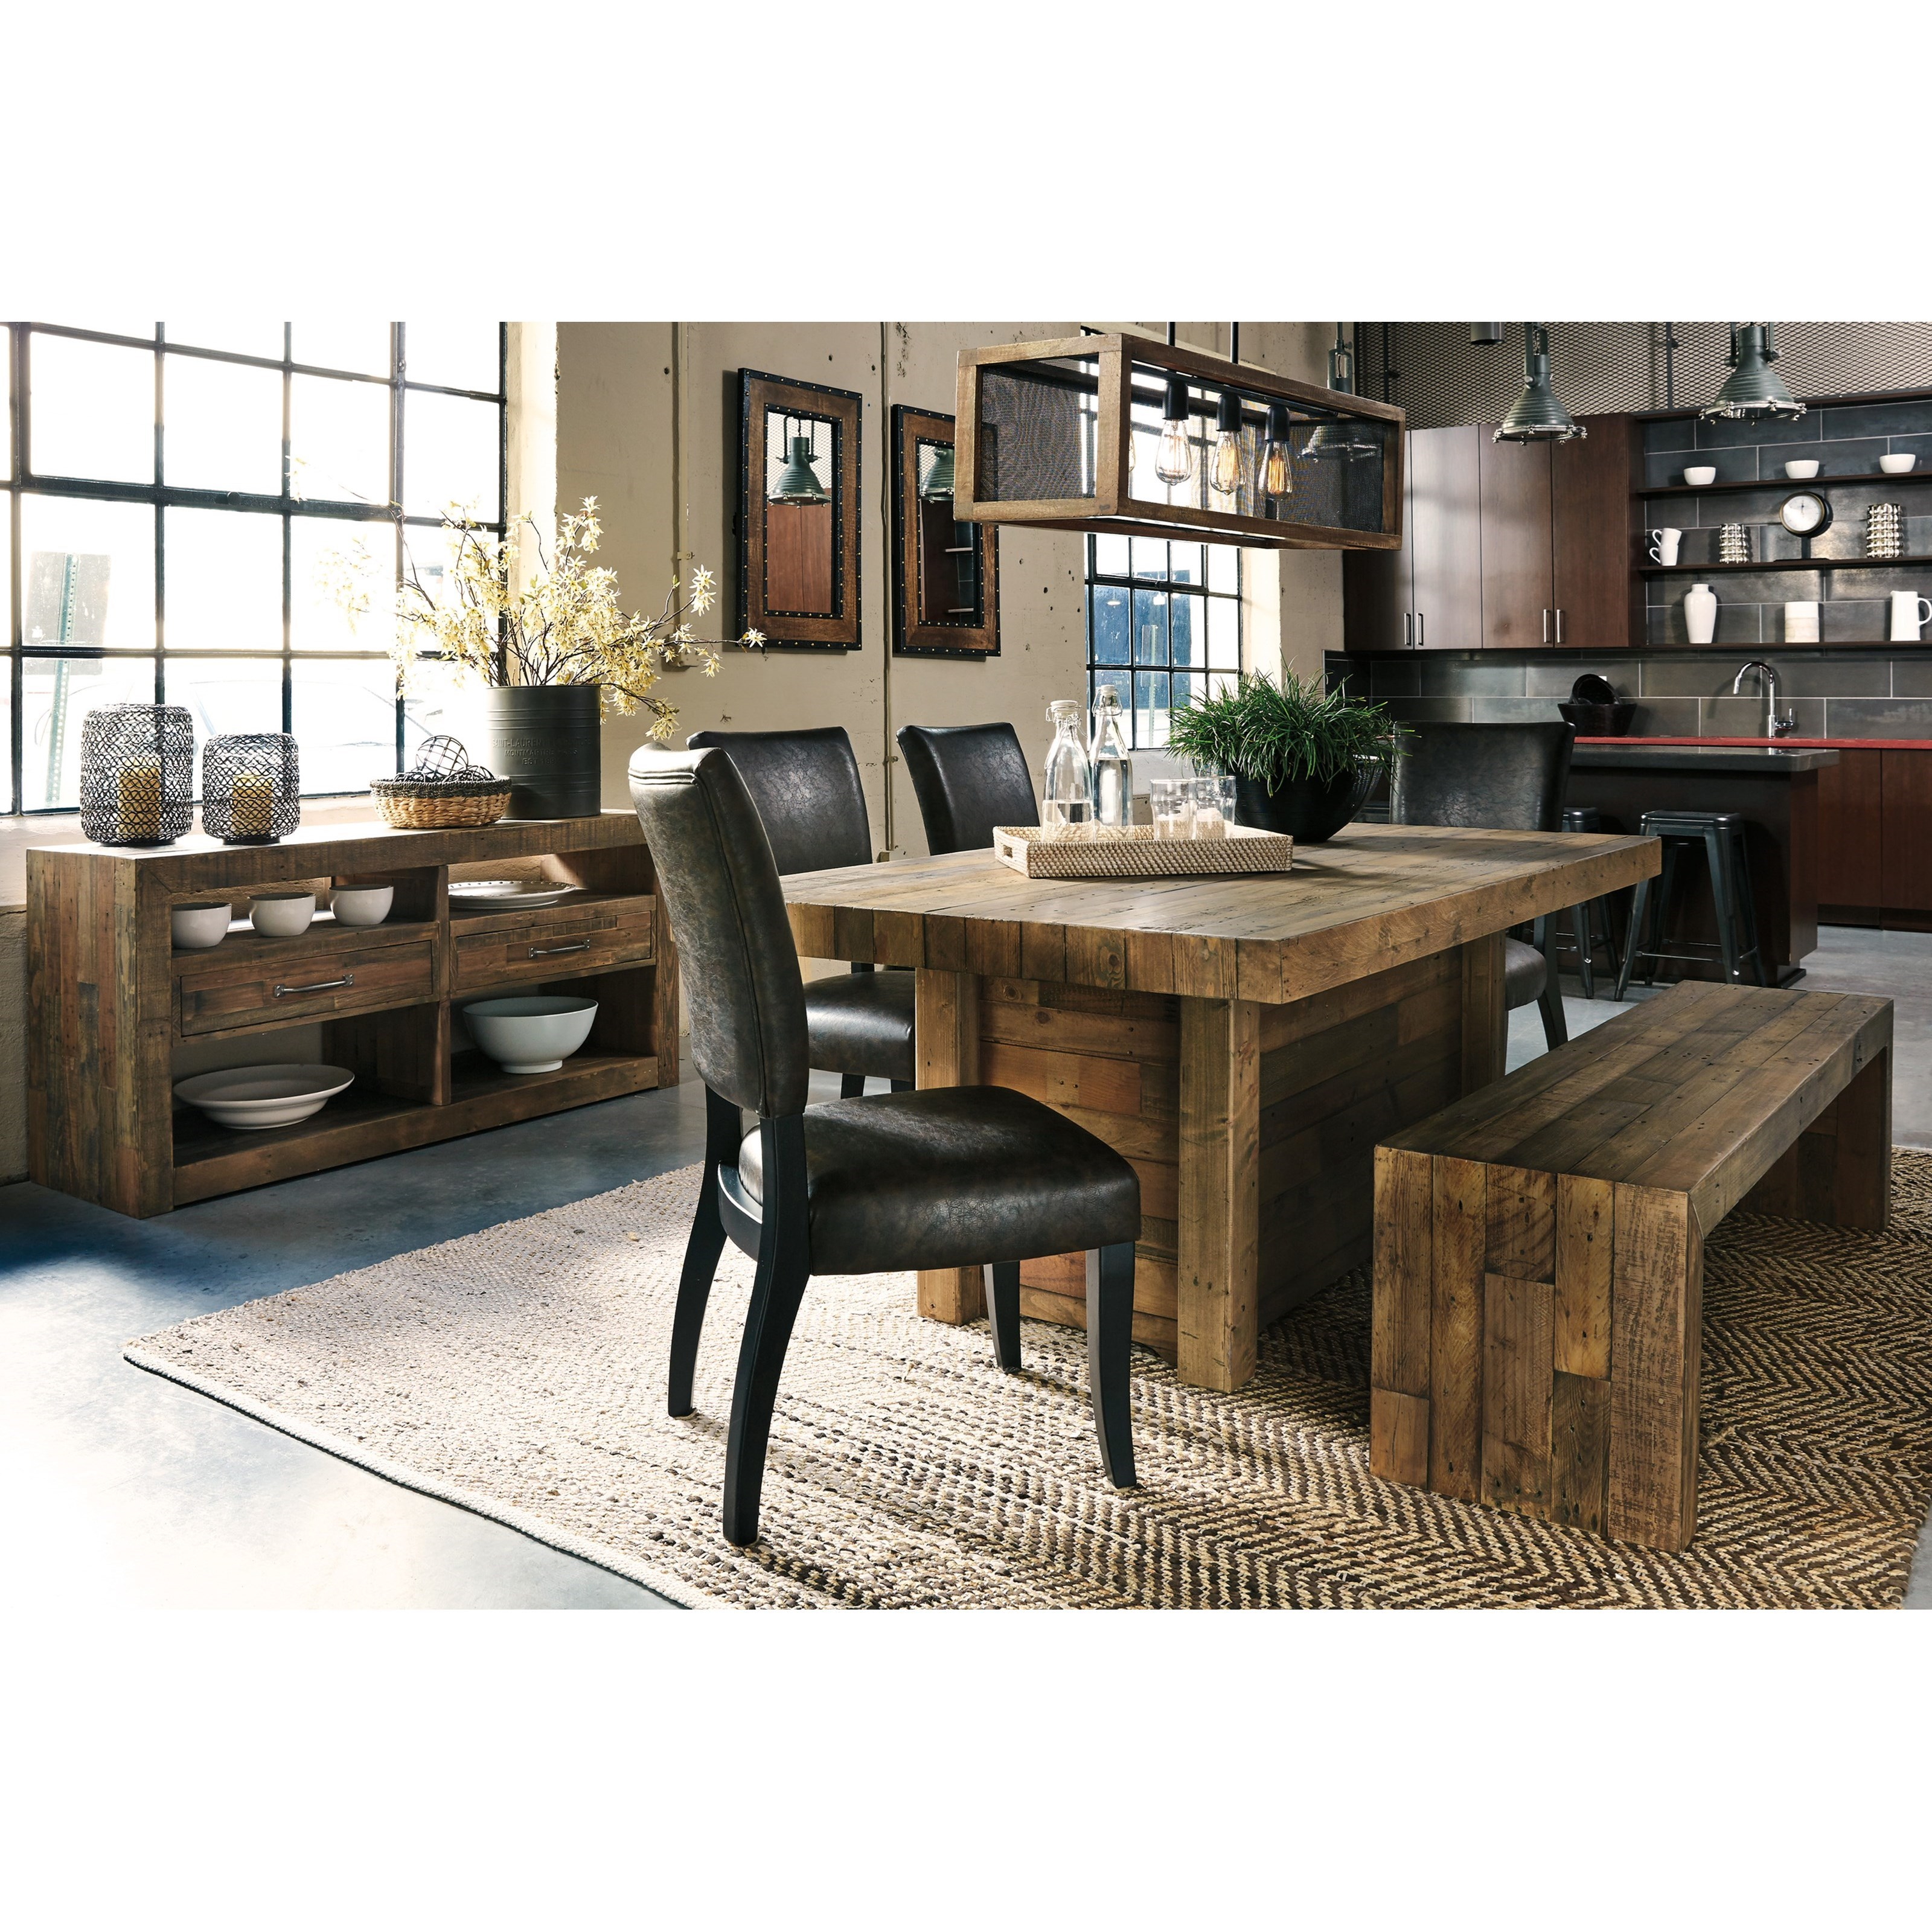 Signature Design by Ashley Sommerford Casual Dining Room